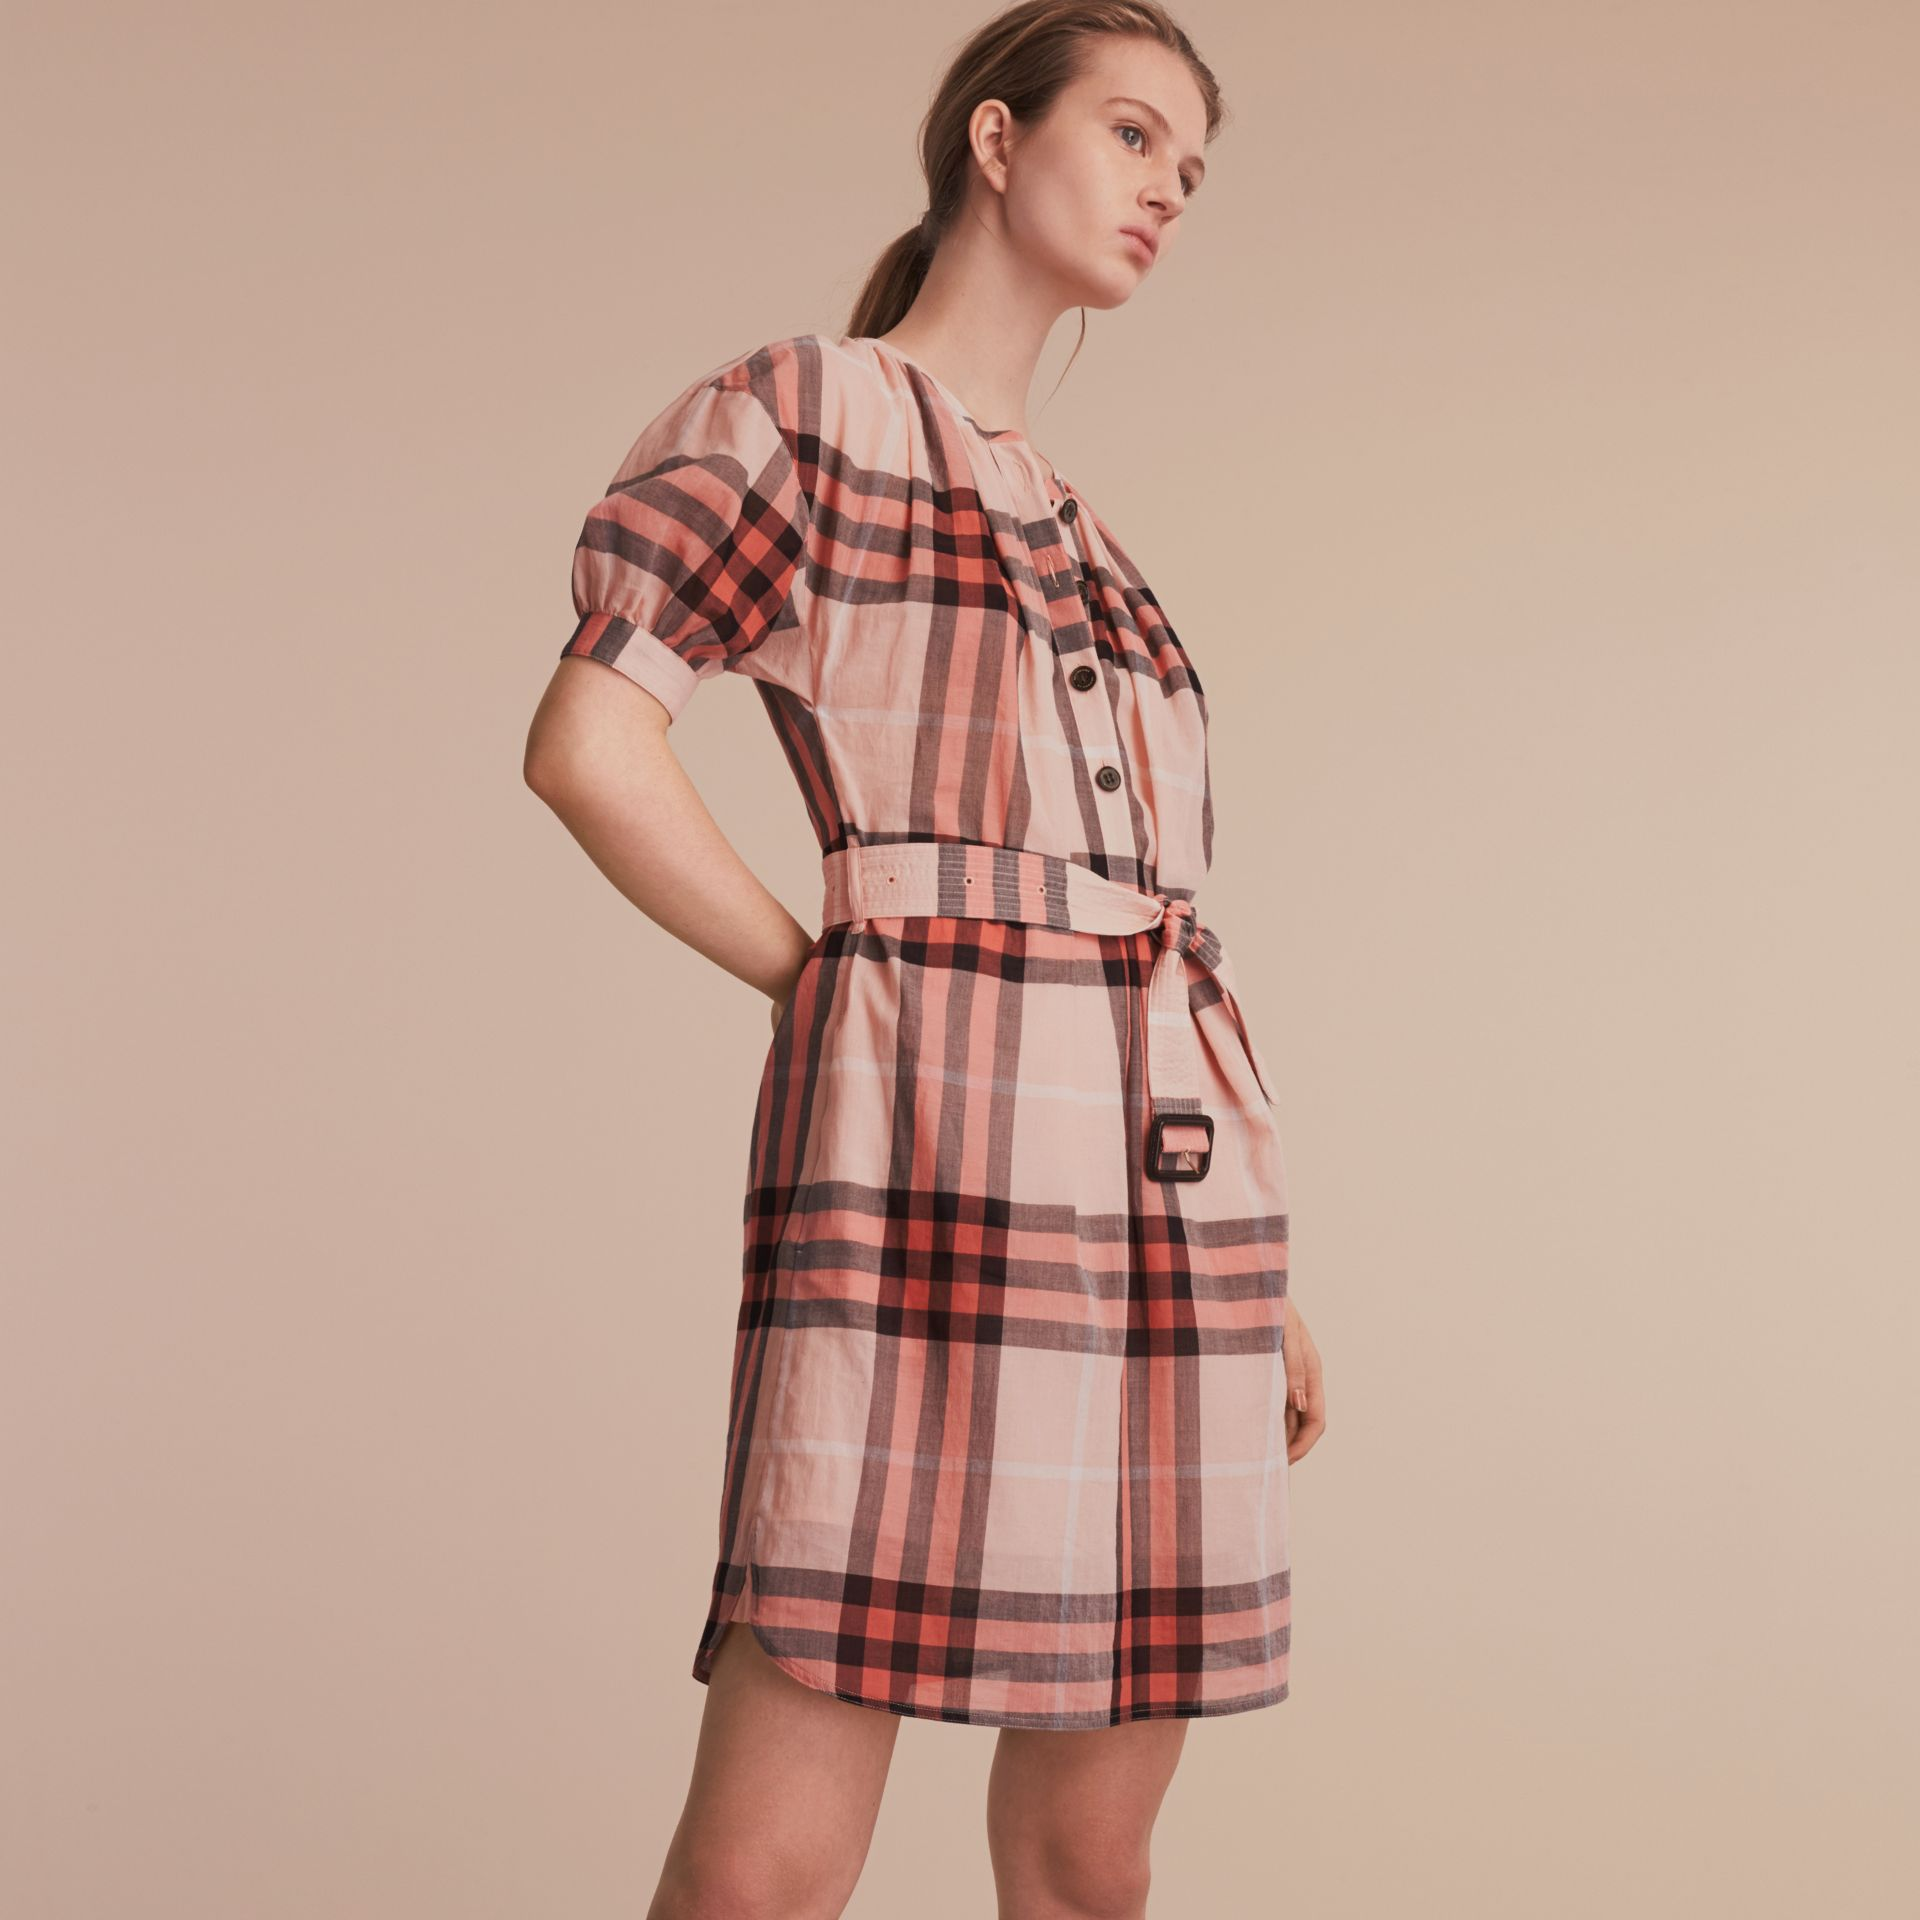 Short-sleeved Collarless Check Cotton Dress in Apricot - Women | Burberry - gallery image 6